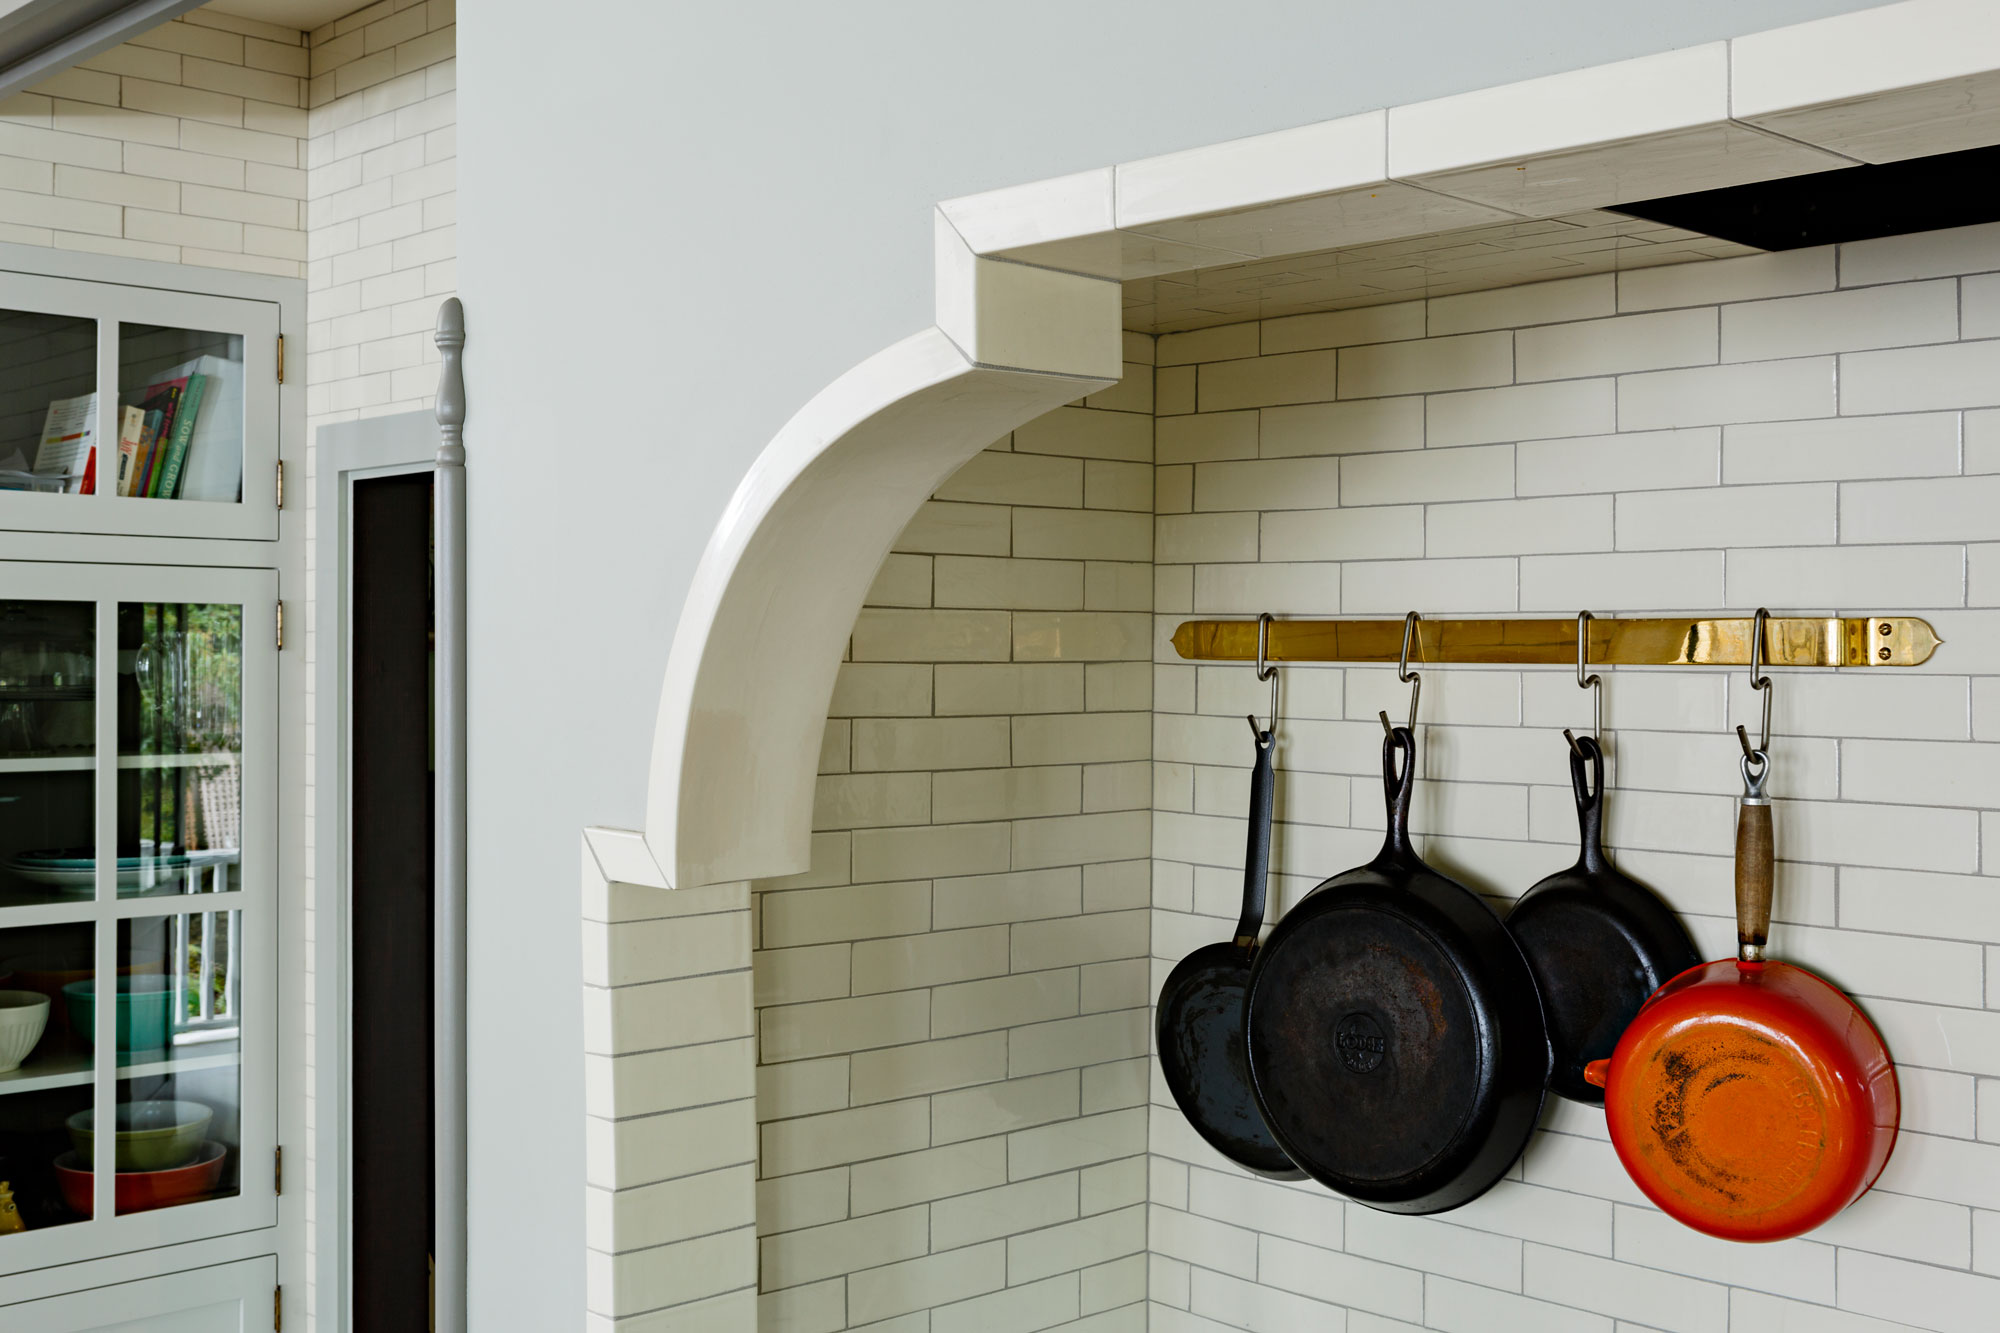 Custom tile corbel at stove alcove